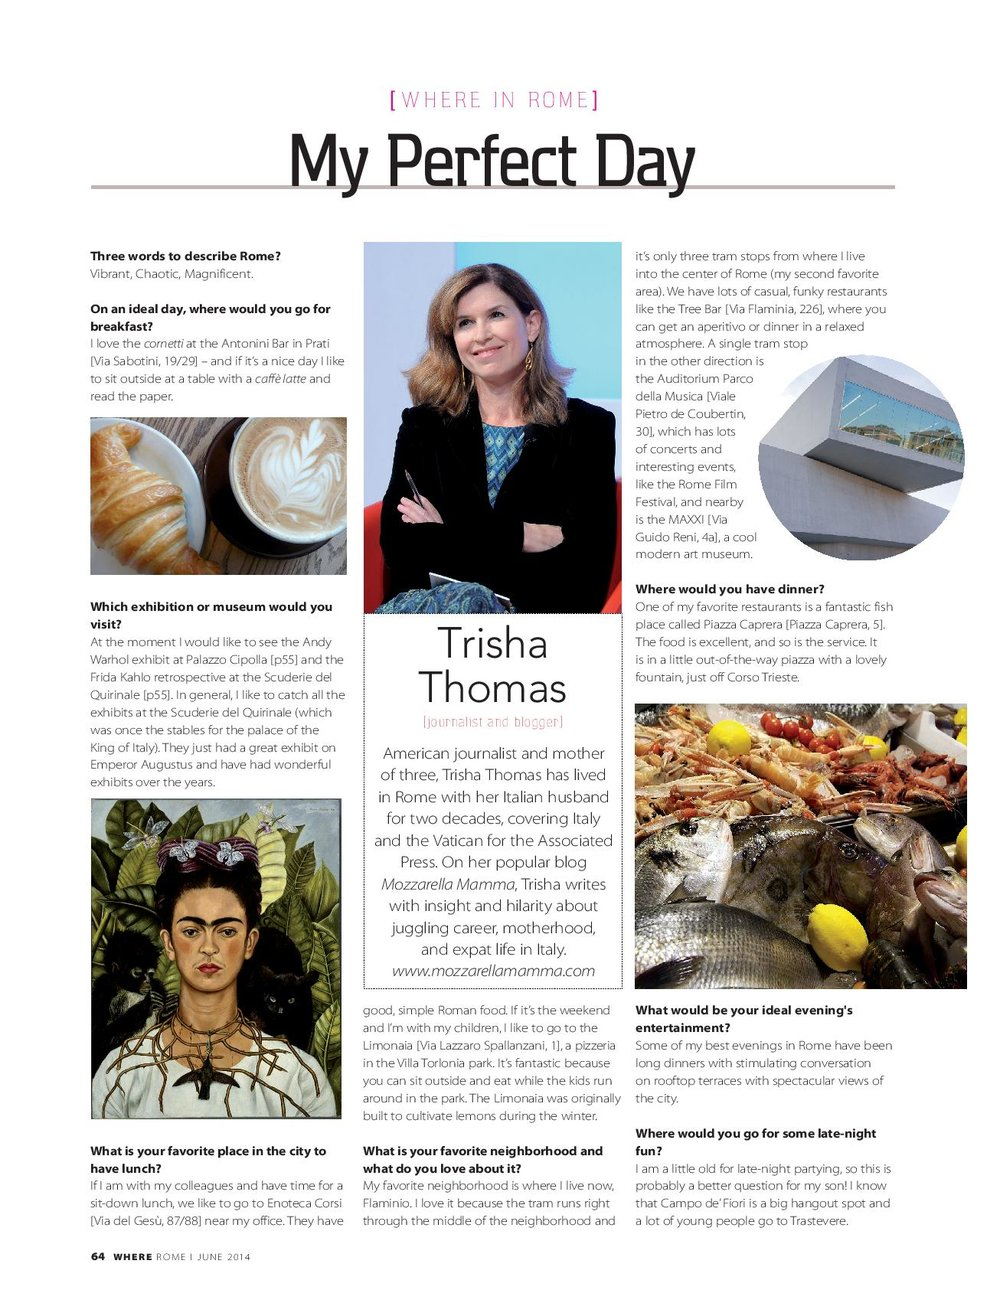 My Perfect Day, Trisha Thomas, June 2014-page-001.jpg